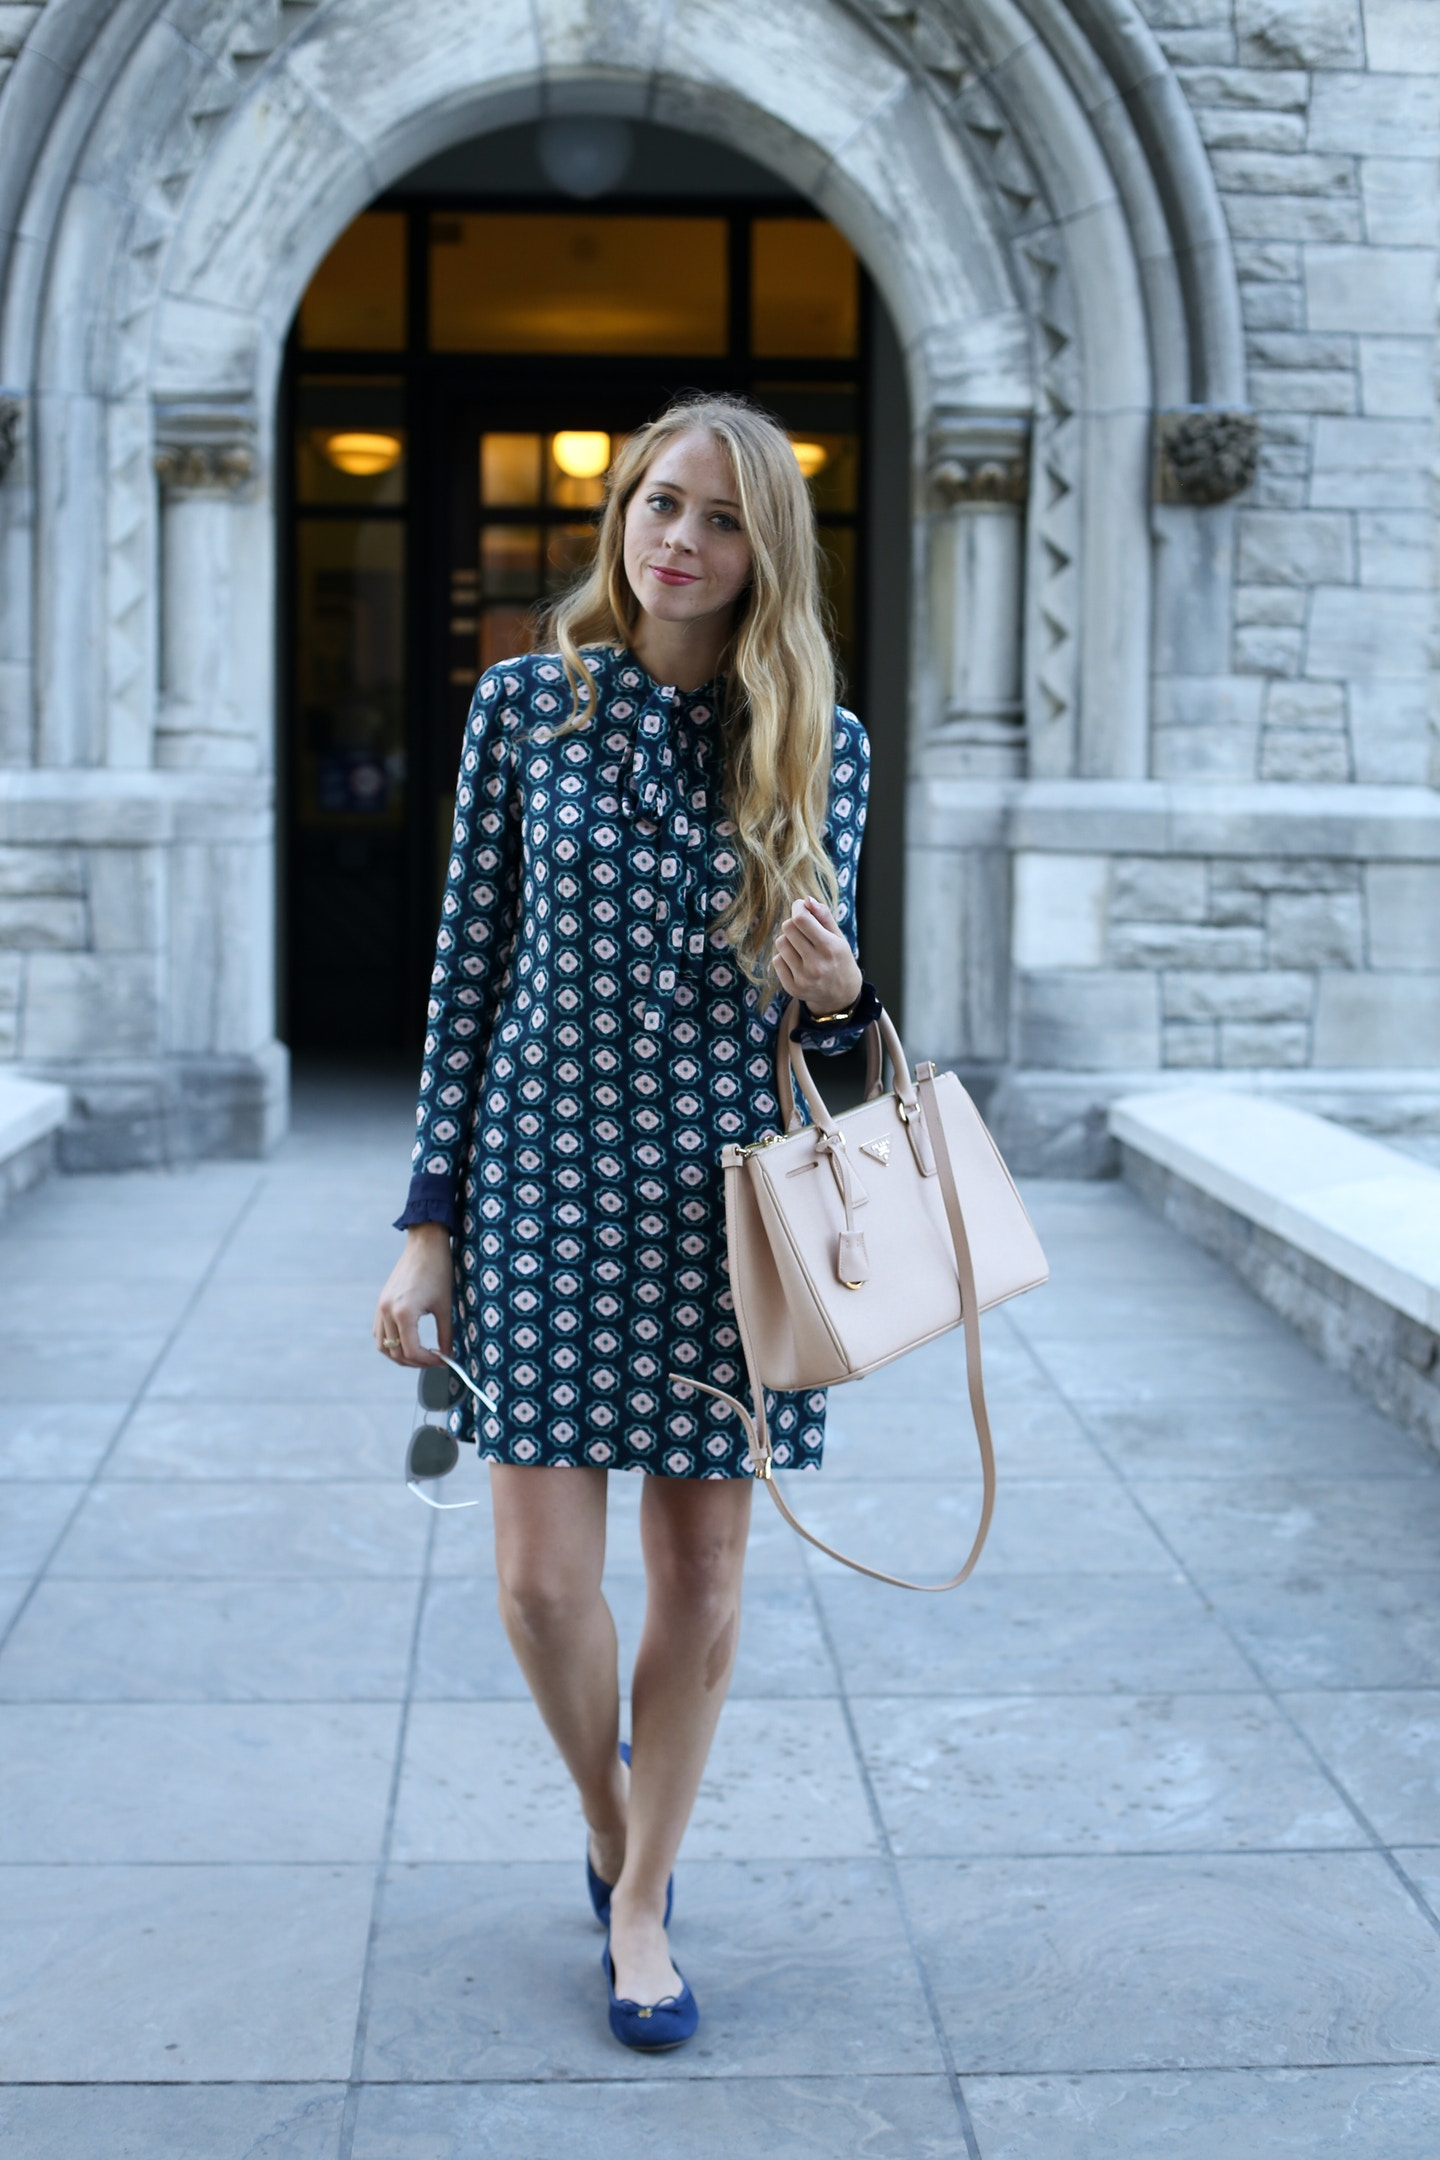 Work Wear Wednesday: Patterned Bow Neck Dress